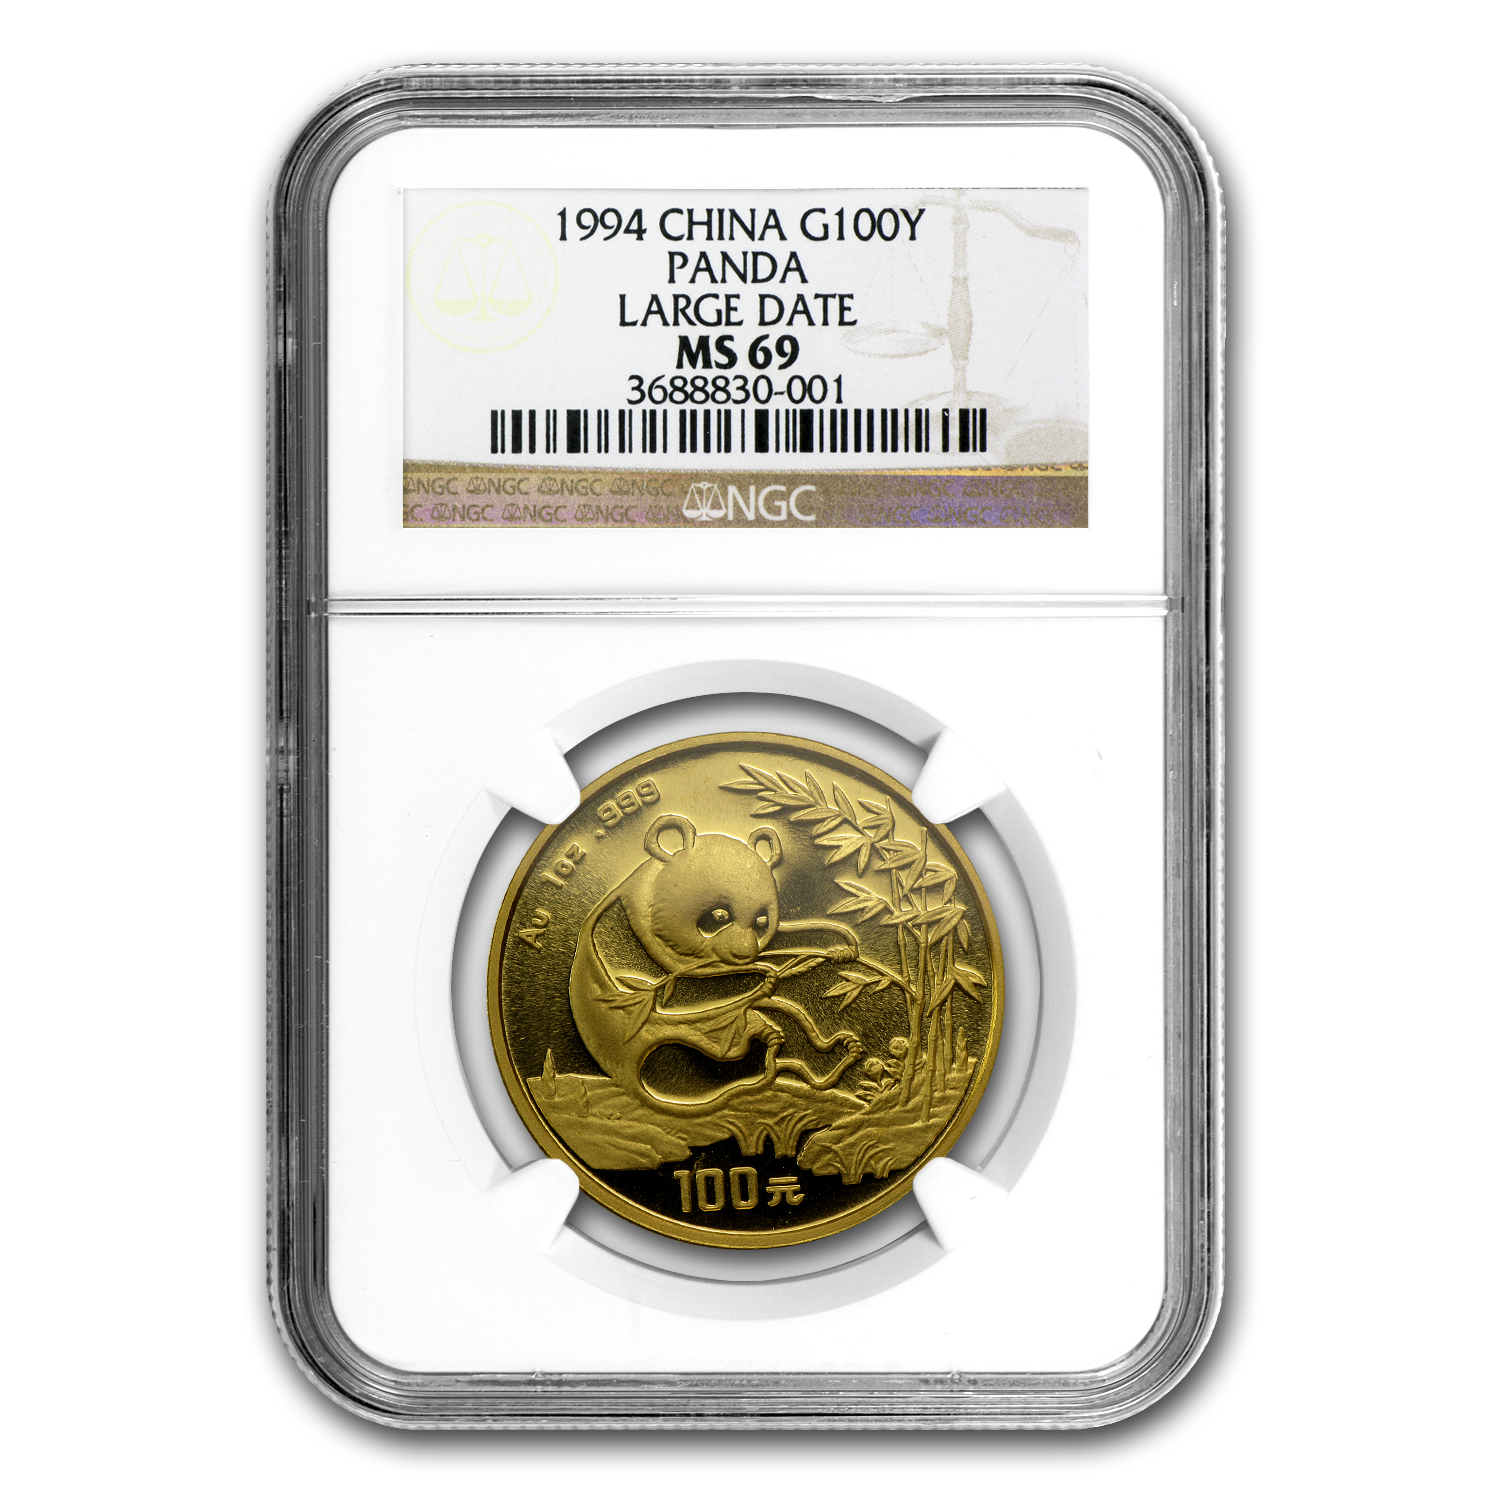 1994 China 1 oz Gold Panda Large Date MS-69 NGC